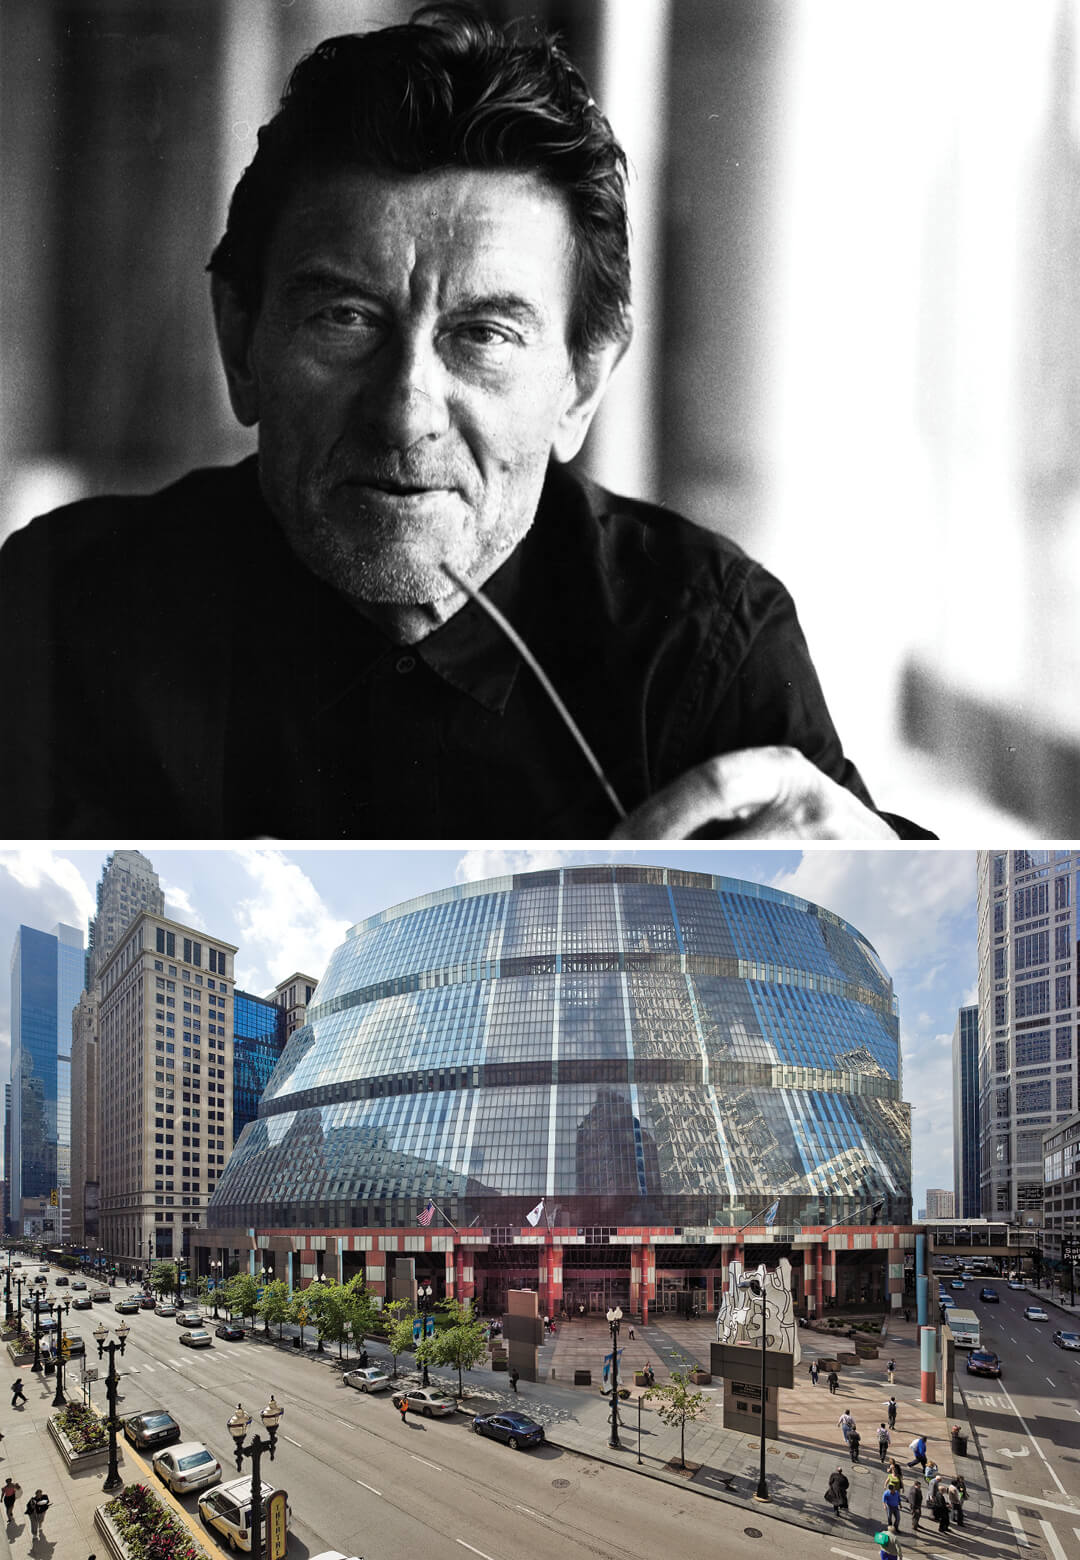 On May 8, 2021, the world lost Helmut Jahn - a German-American architect known for some of Chicago's most iconic buildings such as the James R. Thompson Center(1985) | Vladimir Belogolovsky interviews Helmut Jahn | STIR Tribute | STIRworld